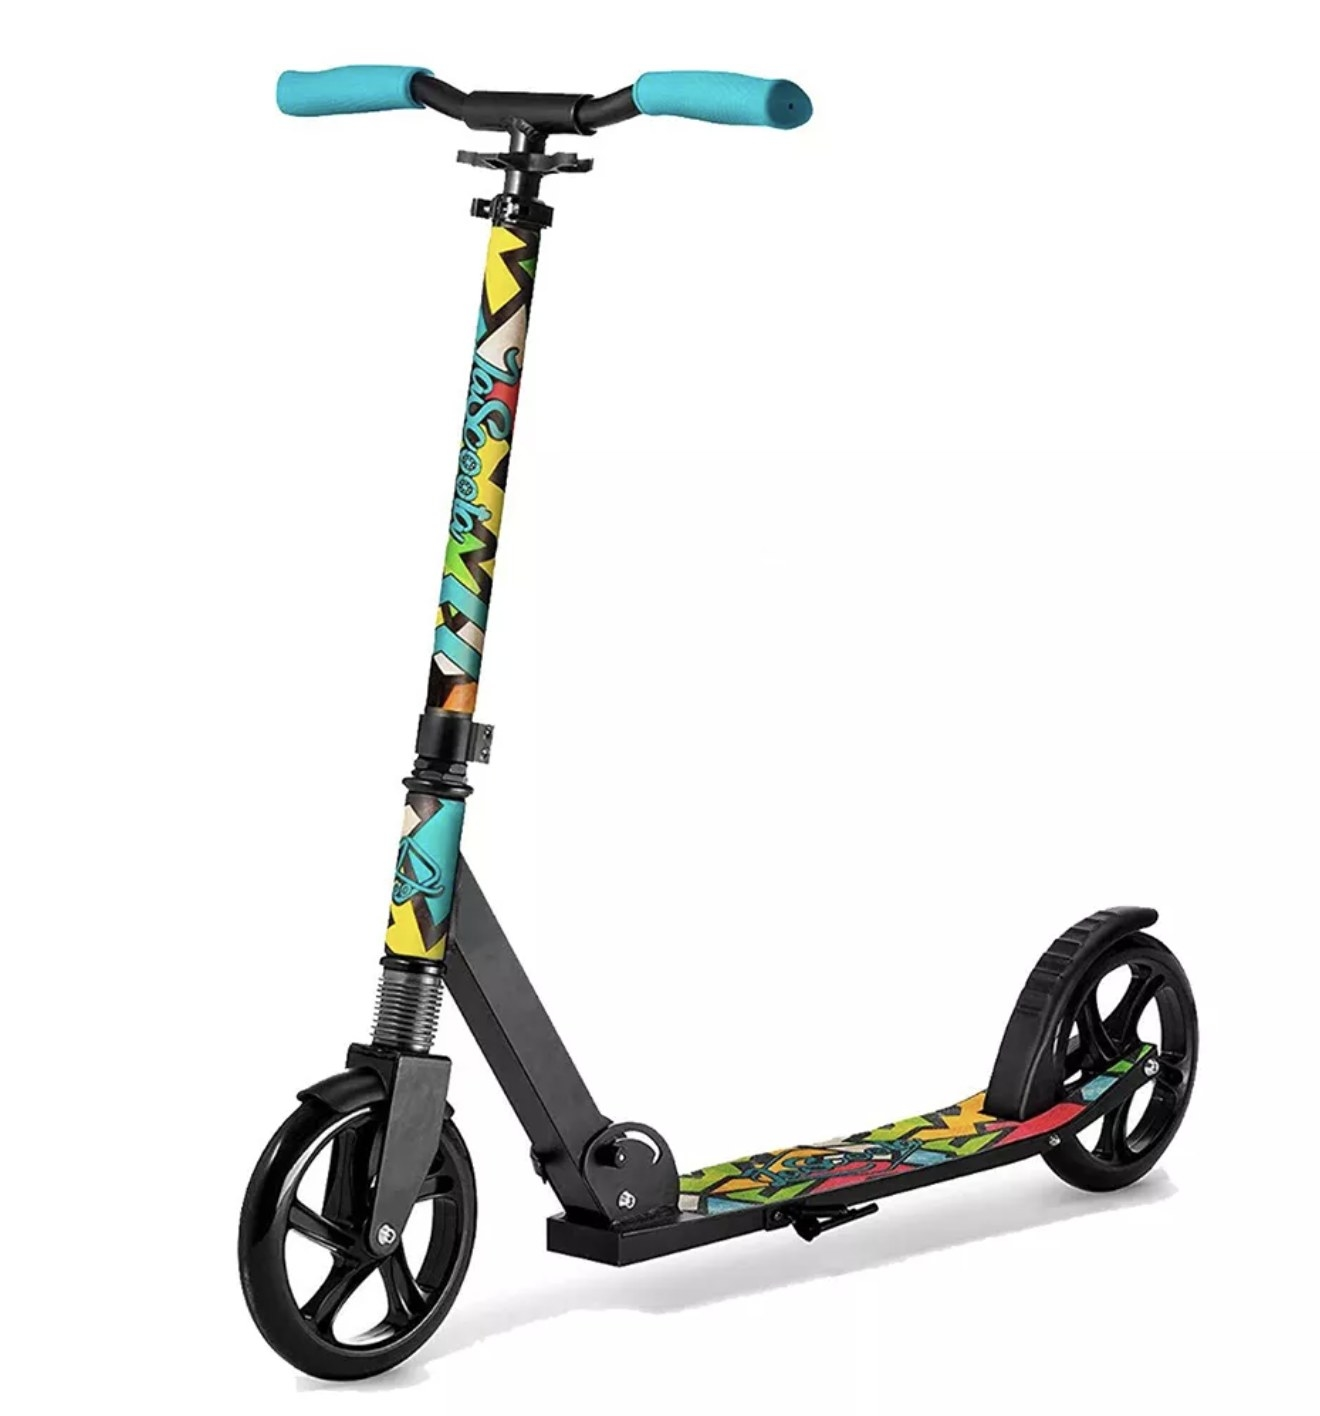 A multi-colored kid's scooter